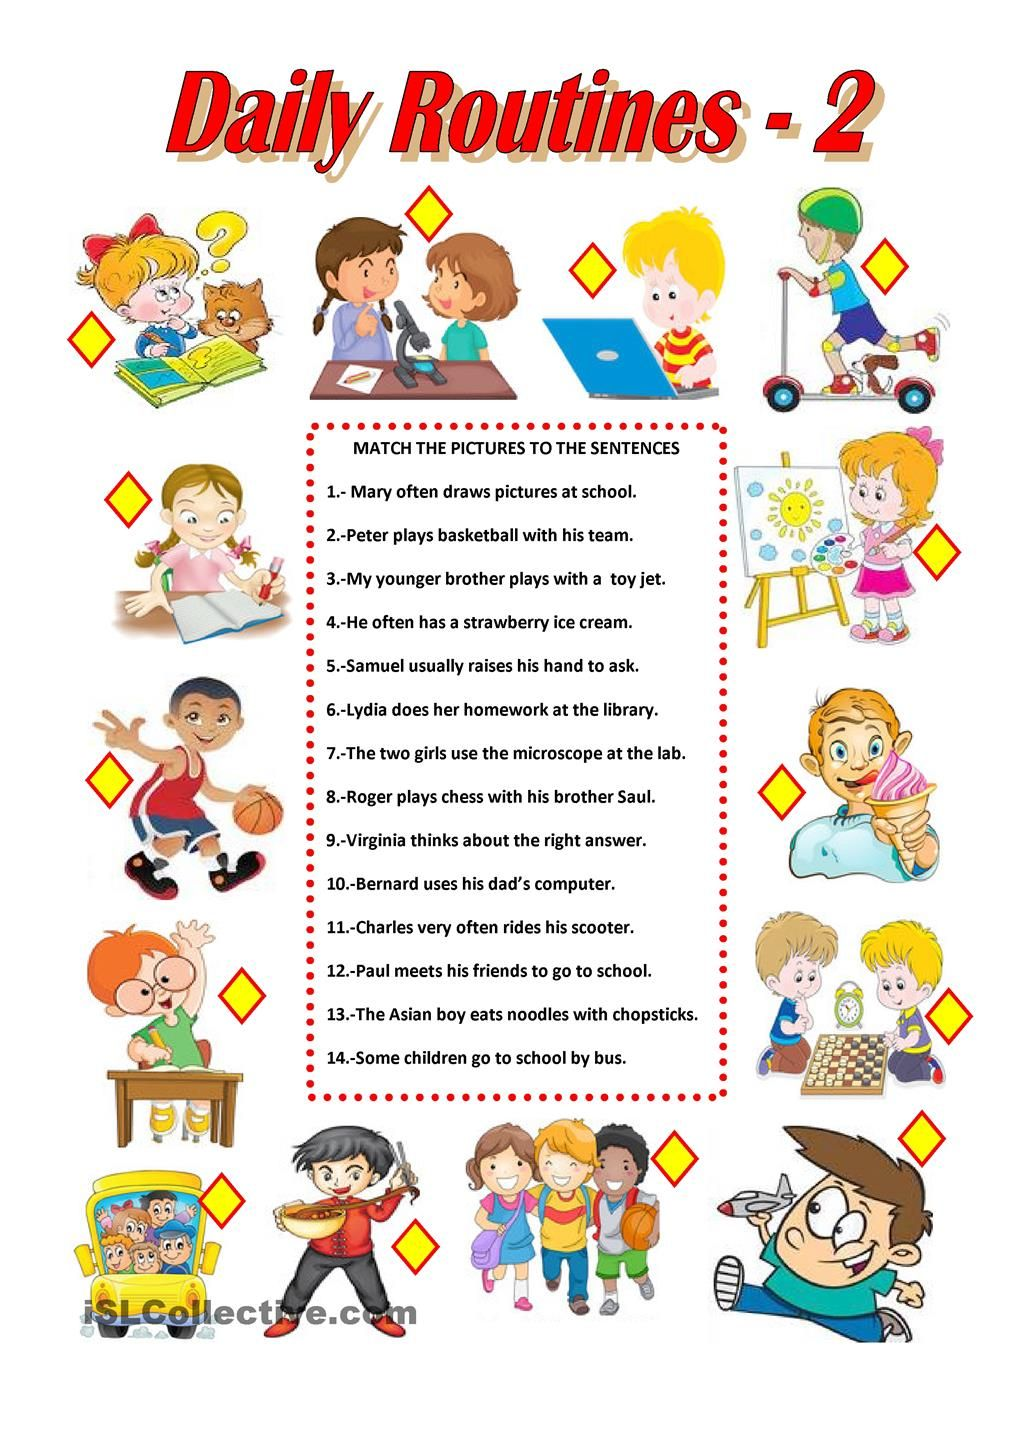 daily routine time activities telling time d person daily routines 2 worksheet esl printable worksheets made by teachers